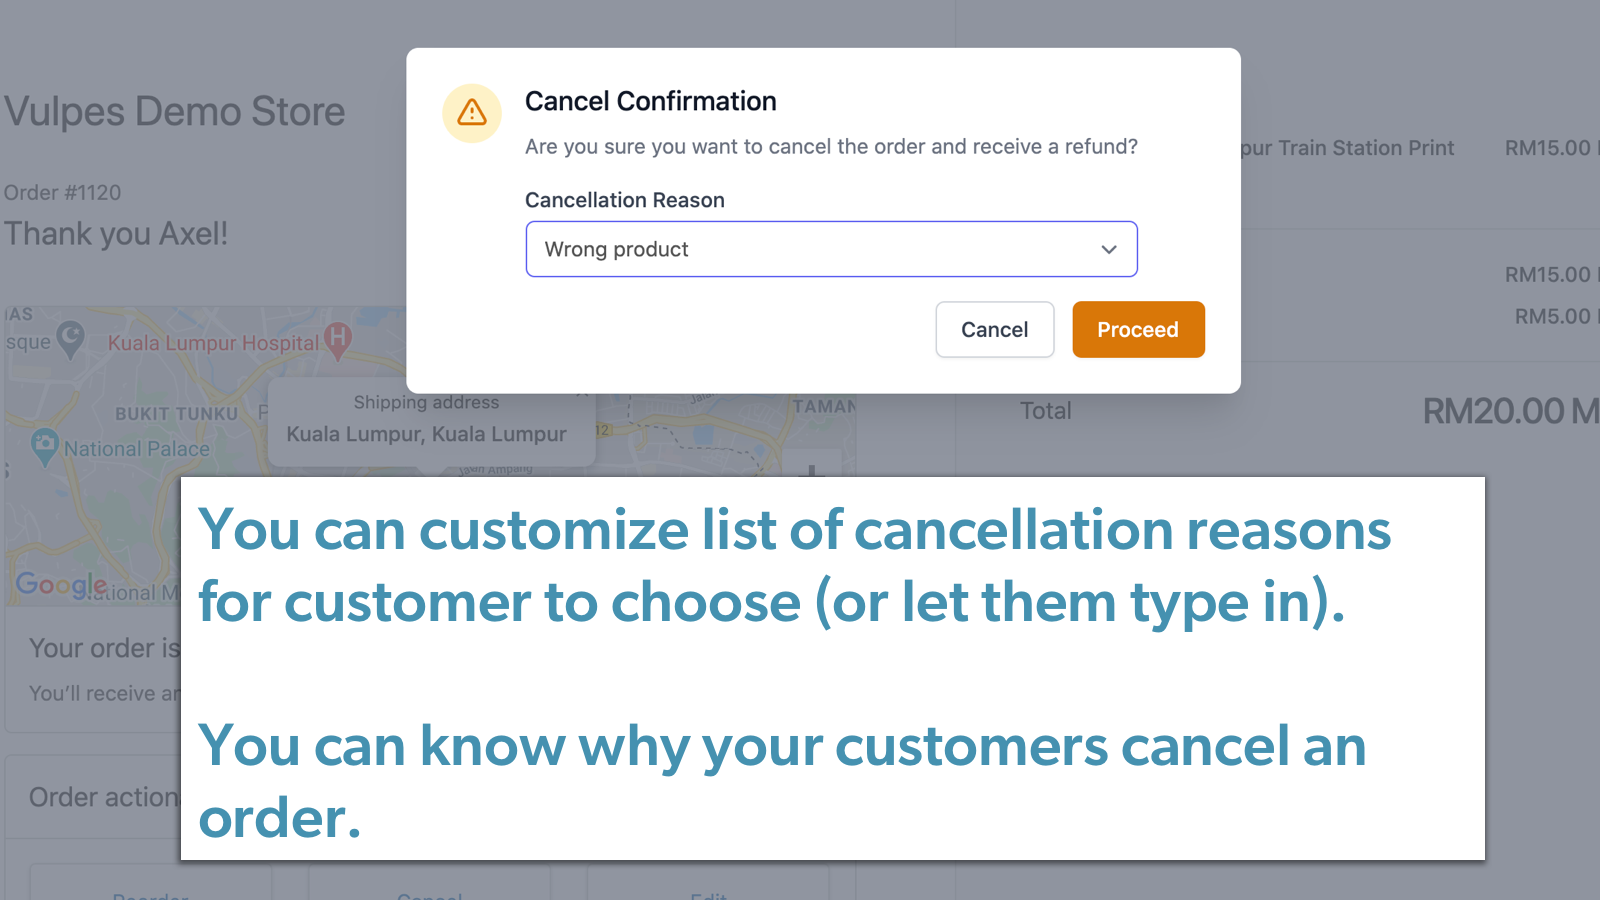 Know why your customer cancel with cancellation reason